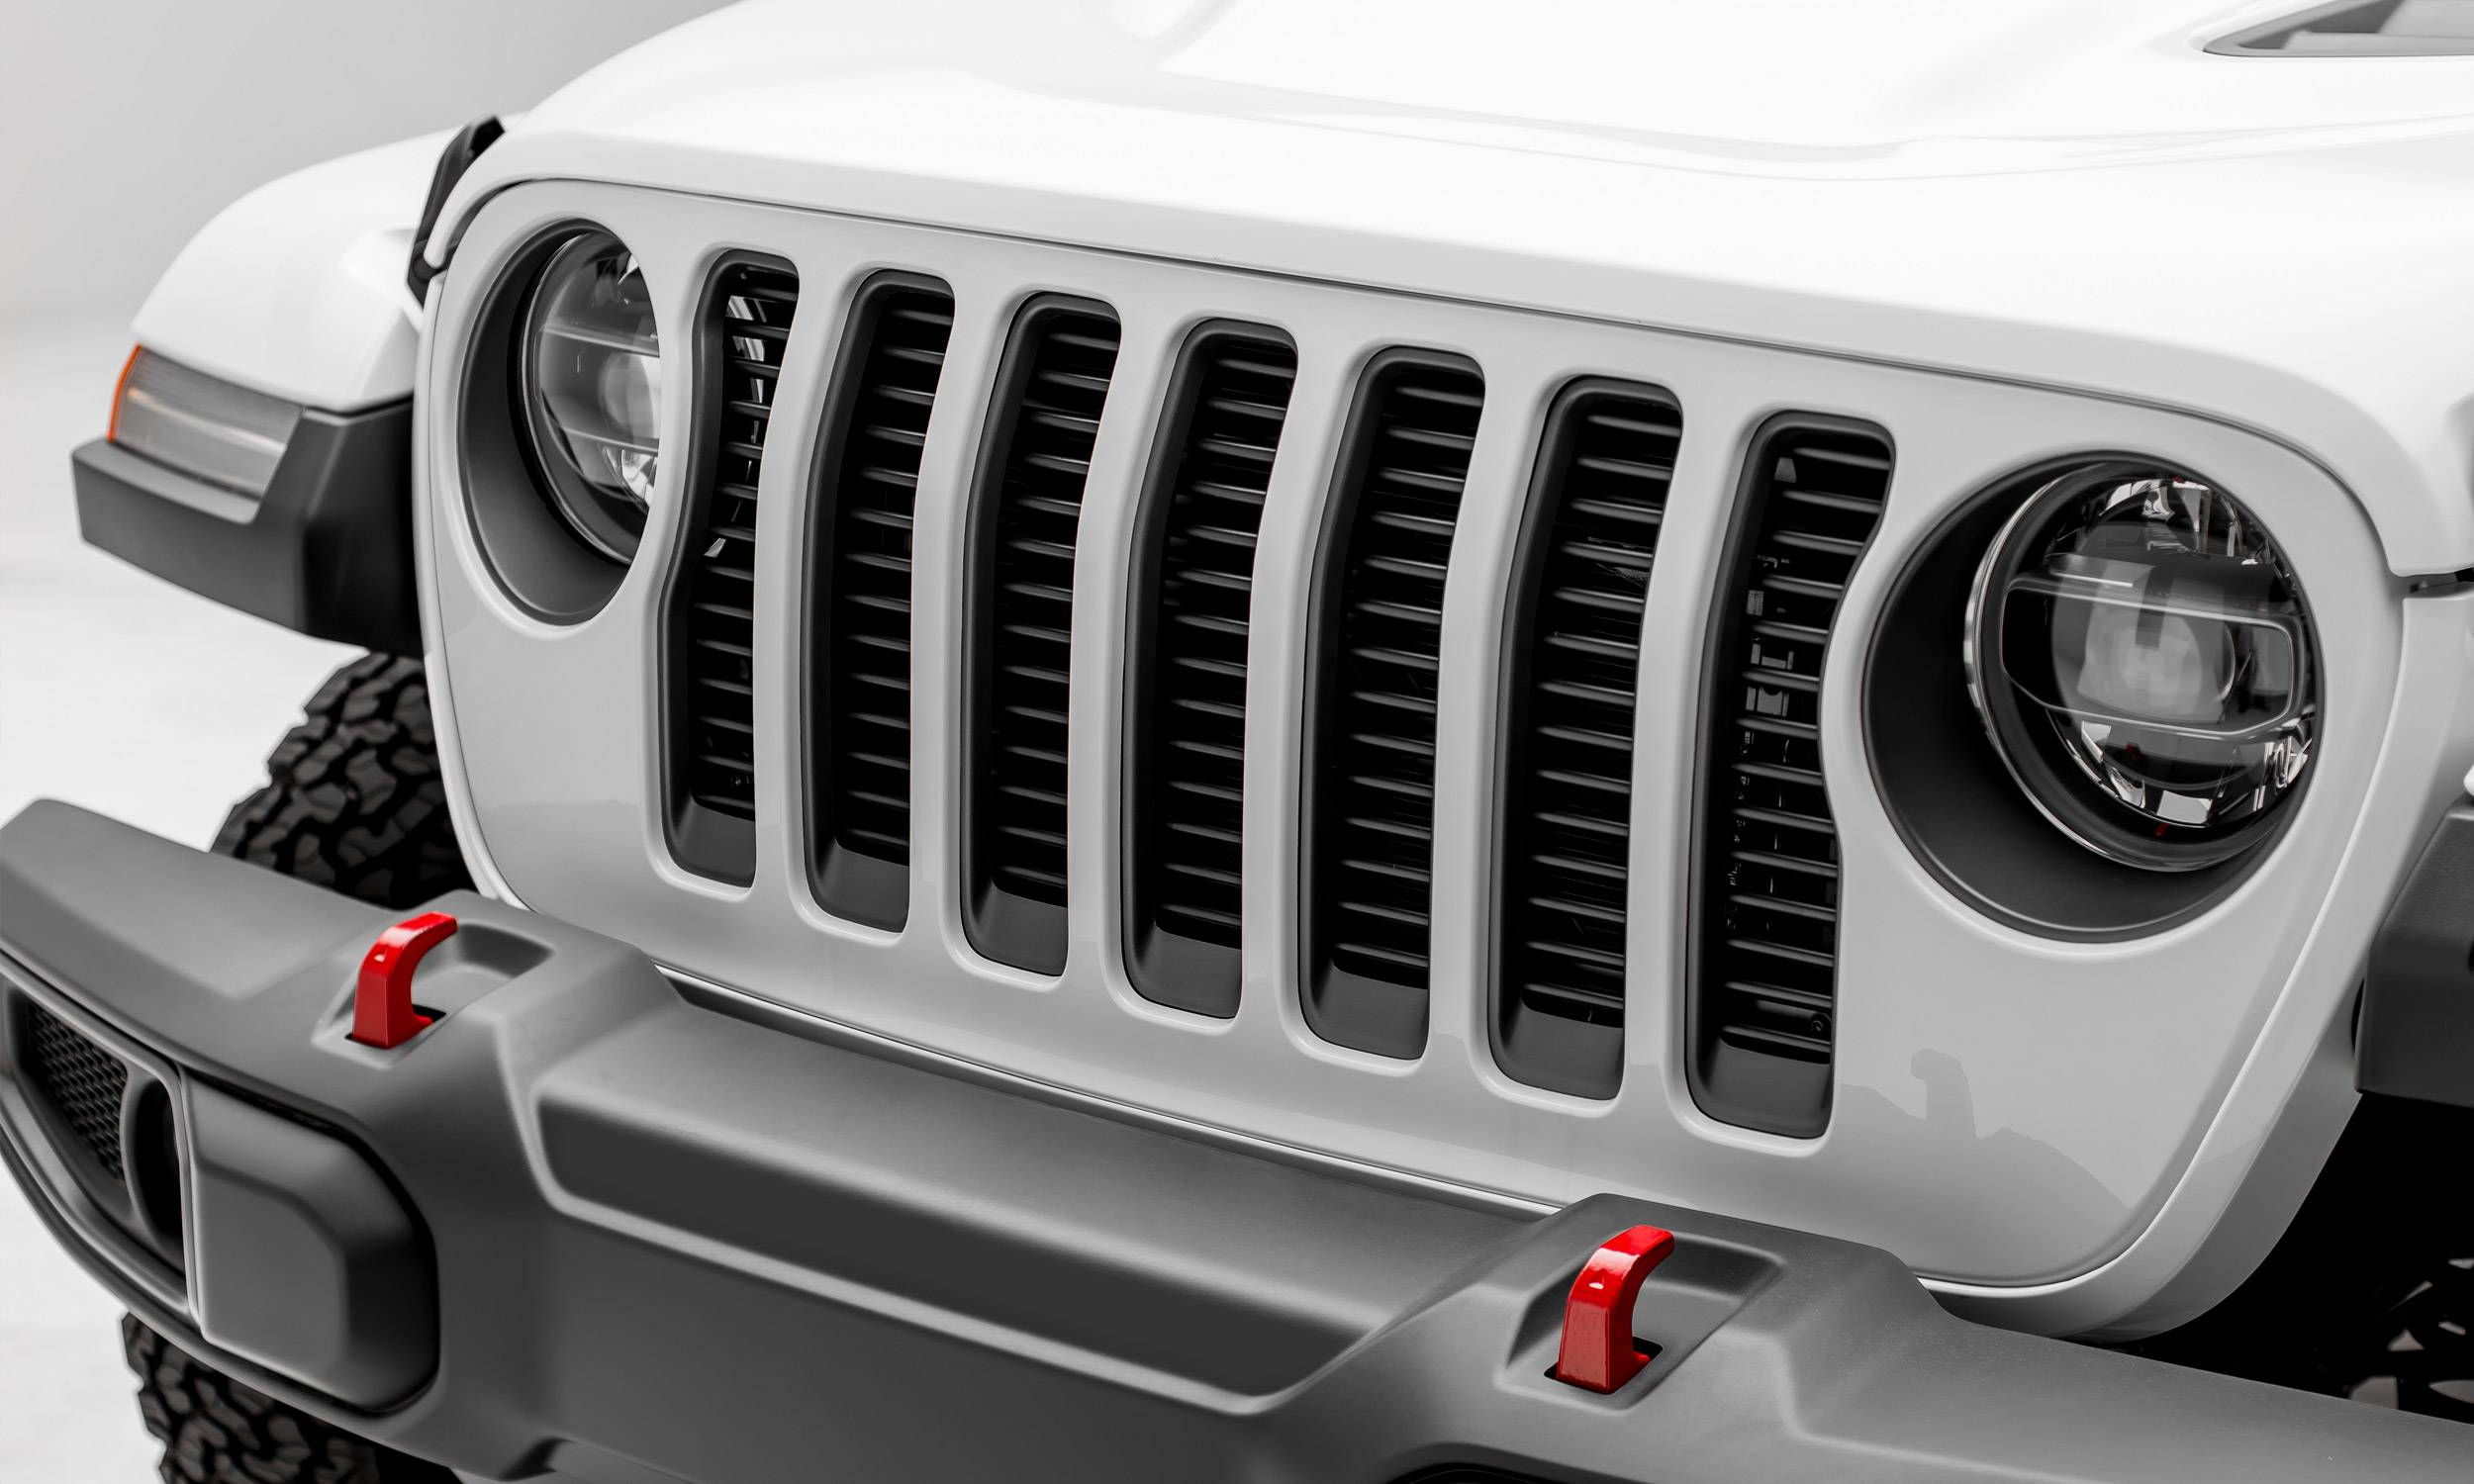 T-REX Grilles - Jeep Gladiator, JL Round Billet Grille, Black, 1 Pc, Insert, Does Not Fit Vehicles with Camera - PN #6204941